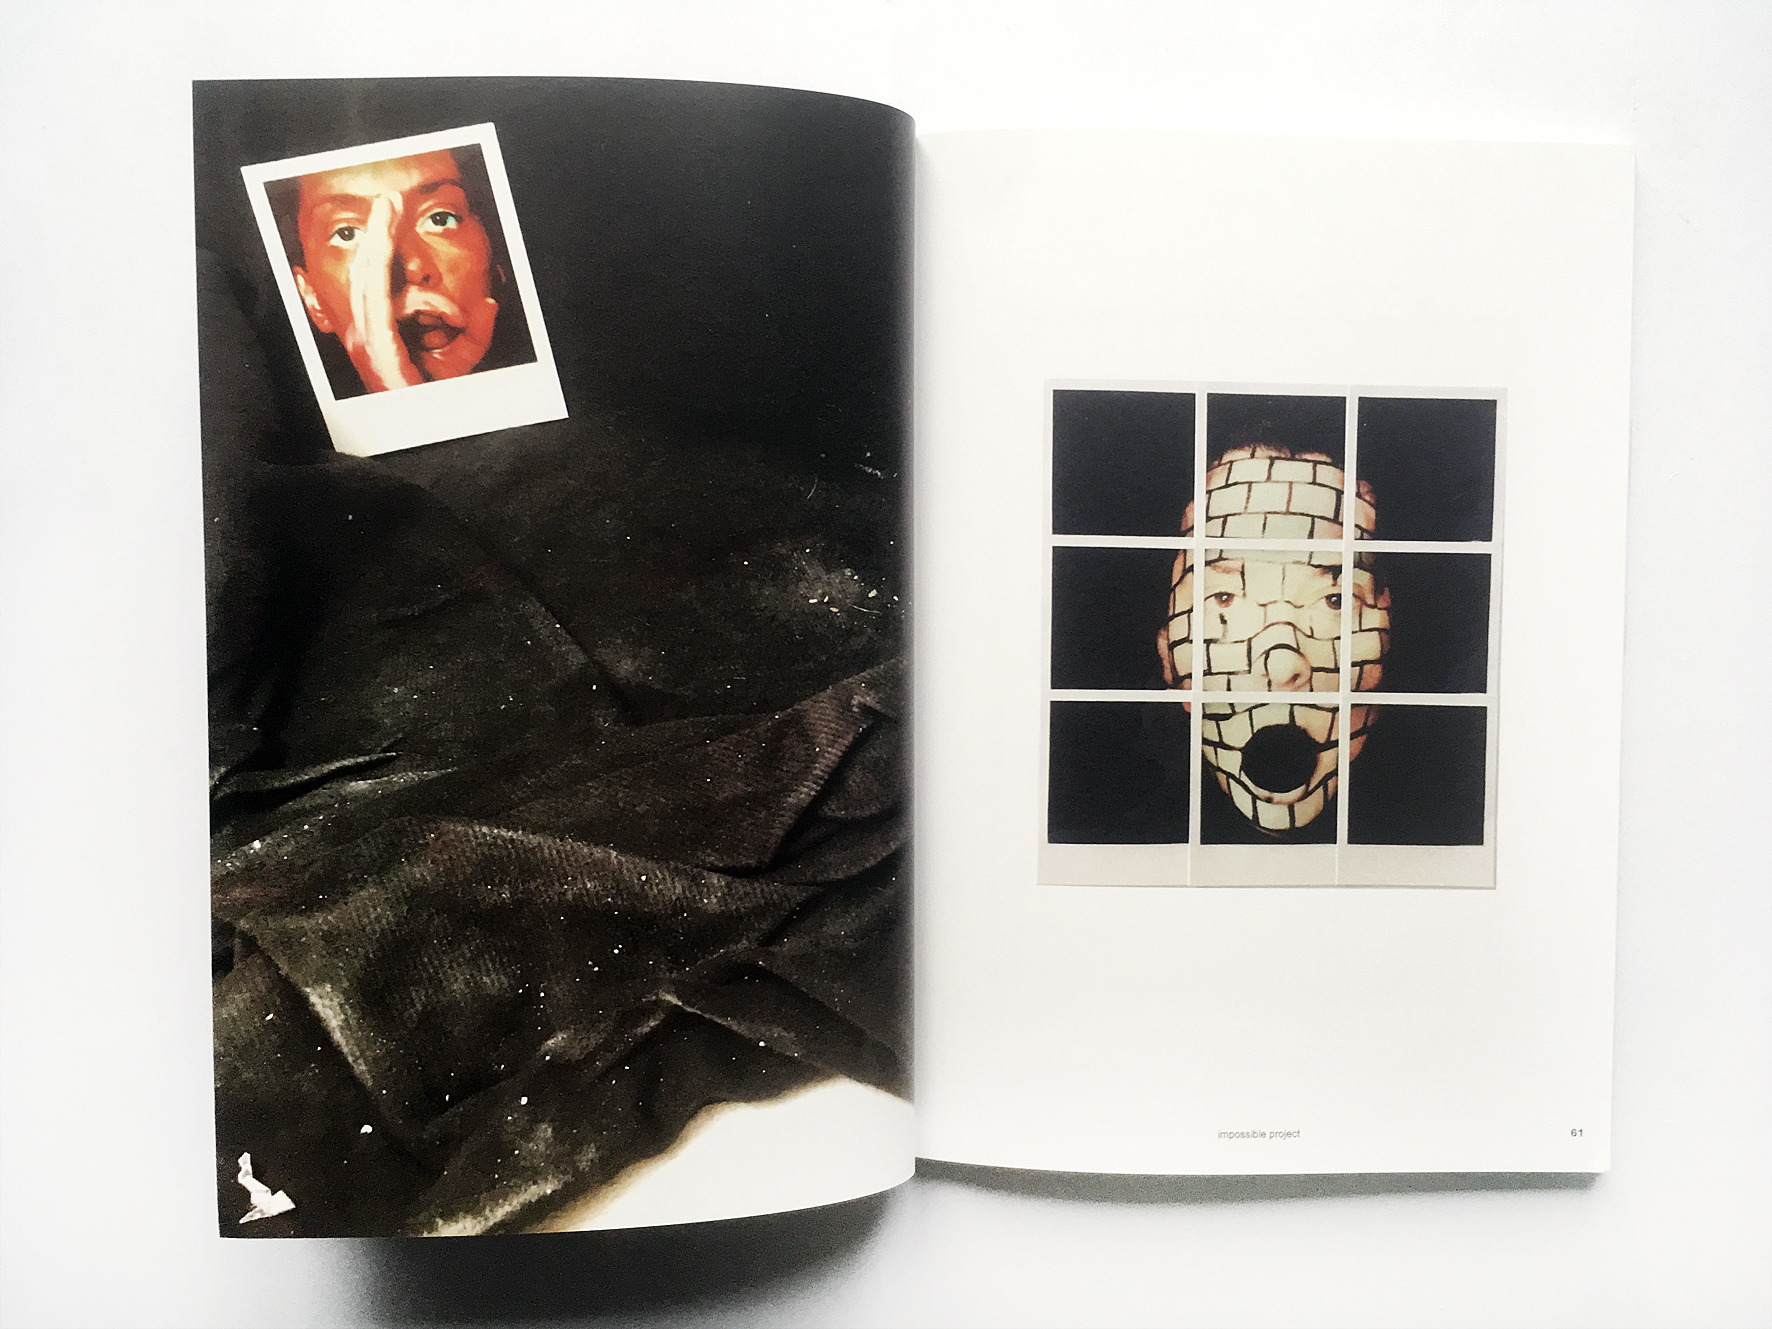 21st CENTURY WOMAN, Susanne Junker, artist book #5, ISSN 1864 – 9883, November 10 2017, soft cover, DIN A5, 14,8 cm x 21,0 cm, color printing on 135g high quality paper, 176 pages, matt-foil laminating and thread stitching, edition No.2 / 75, numbered and signed by the artist.